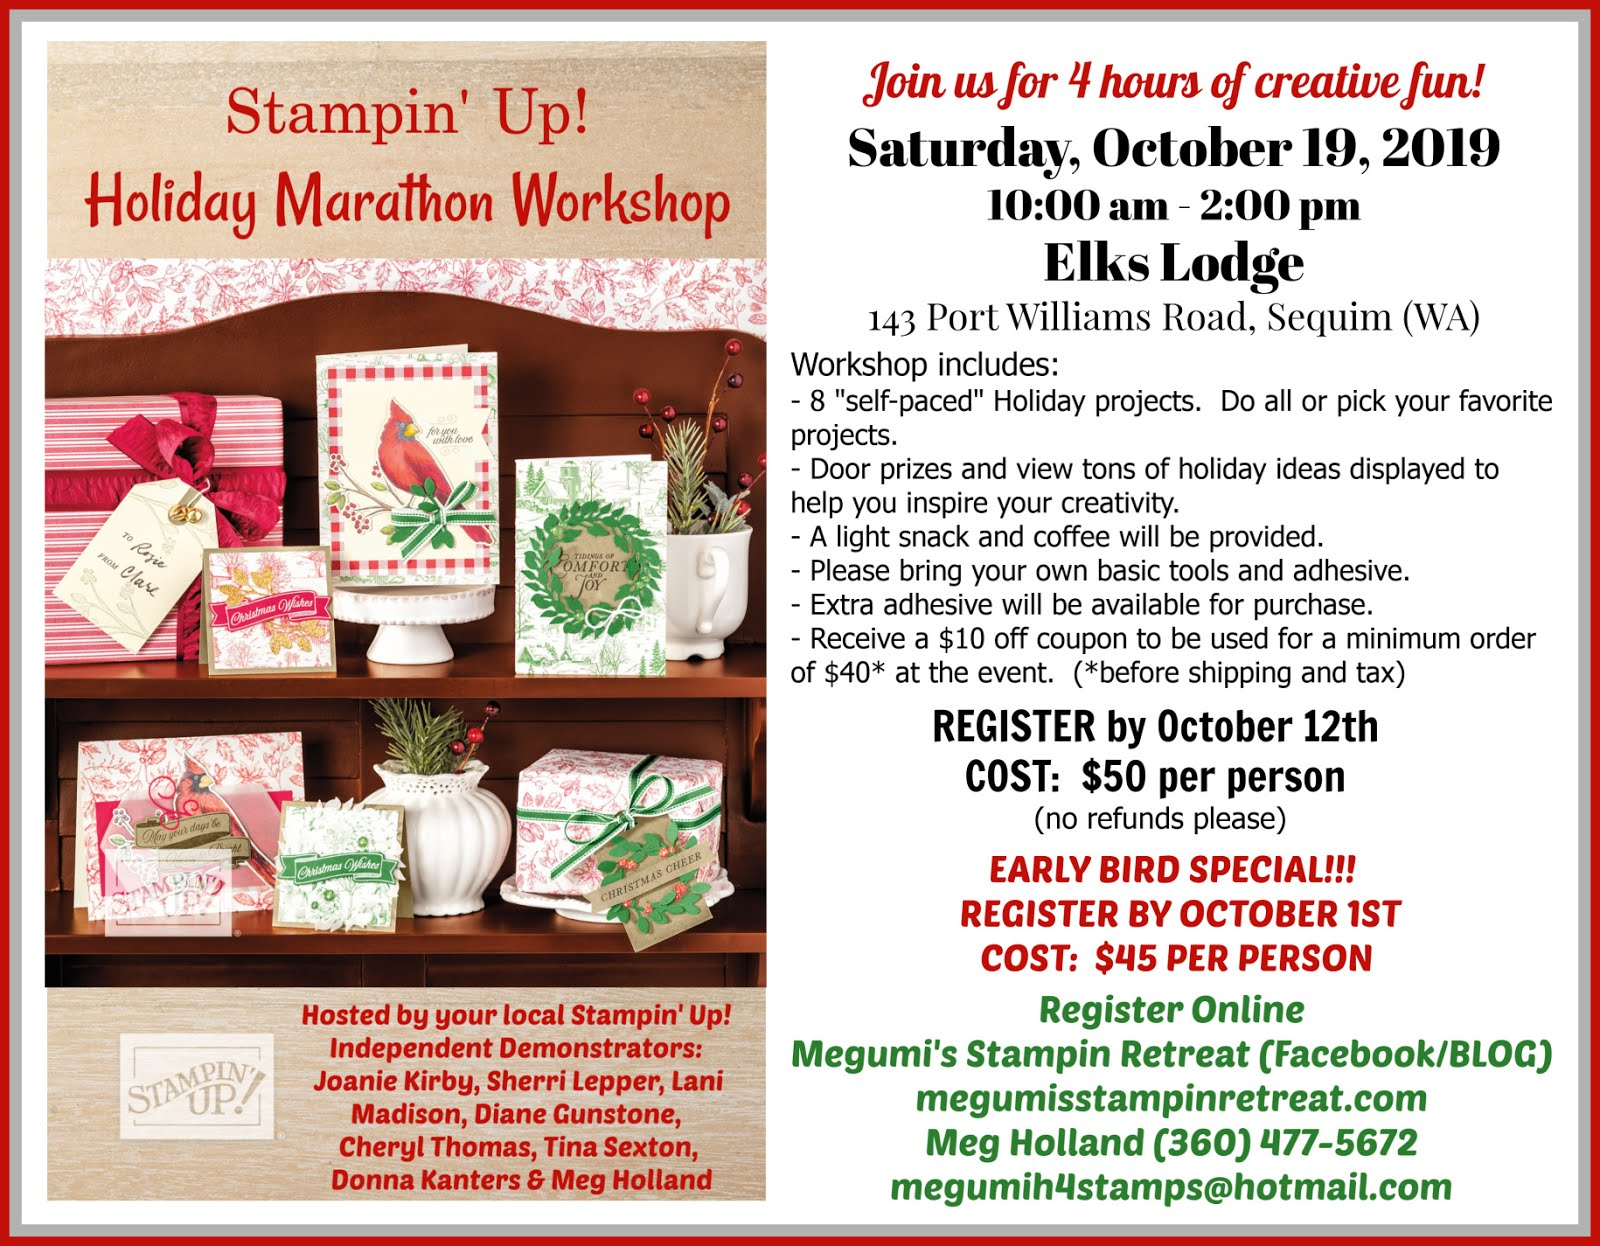 Holiday Marathon Workshop (Oct 19)